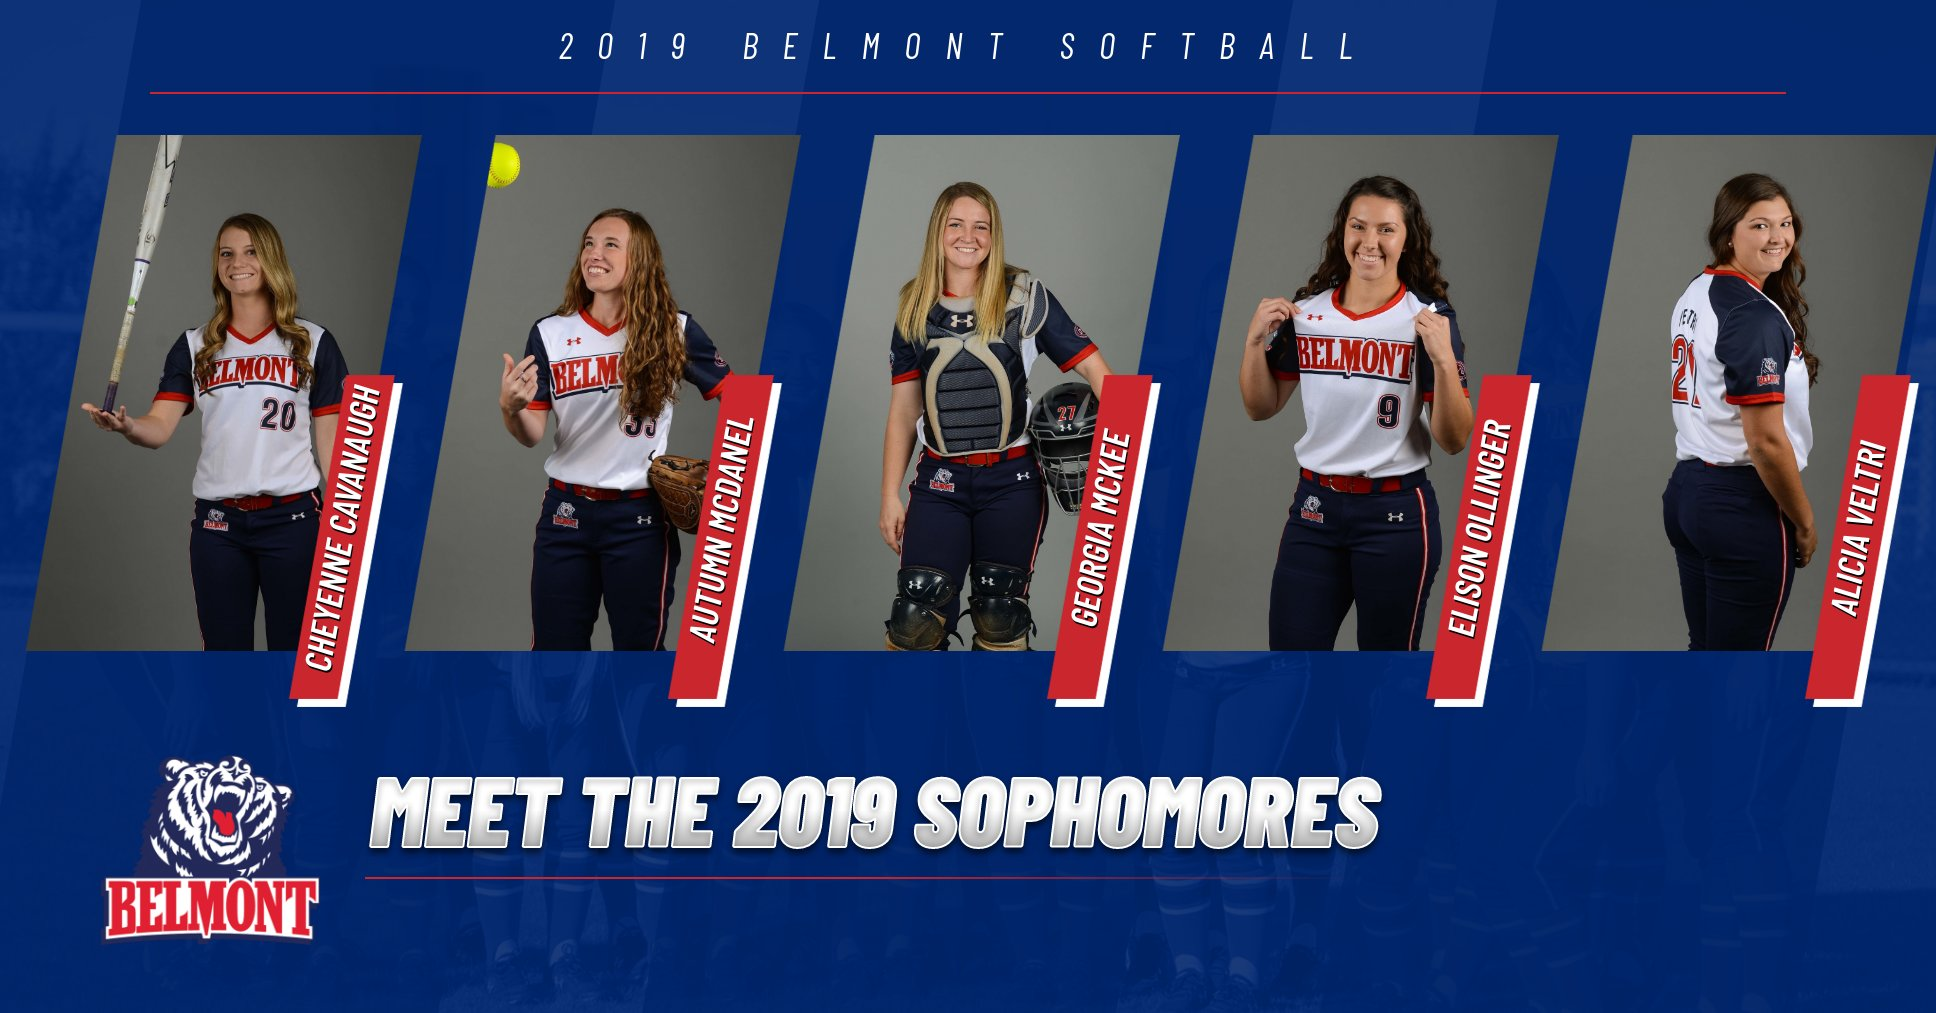 Meet the 2019 Softball Sophomores